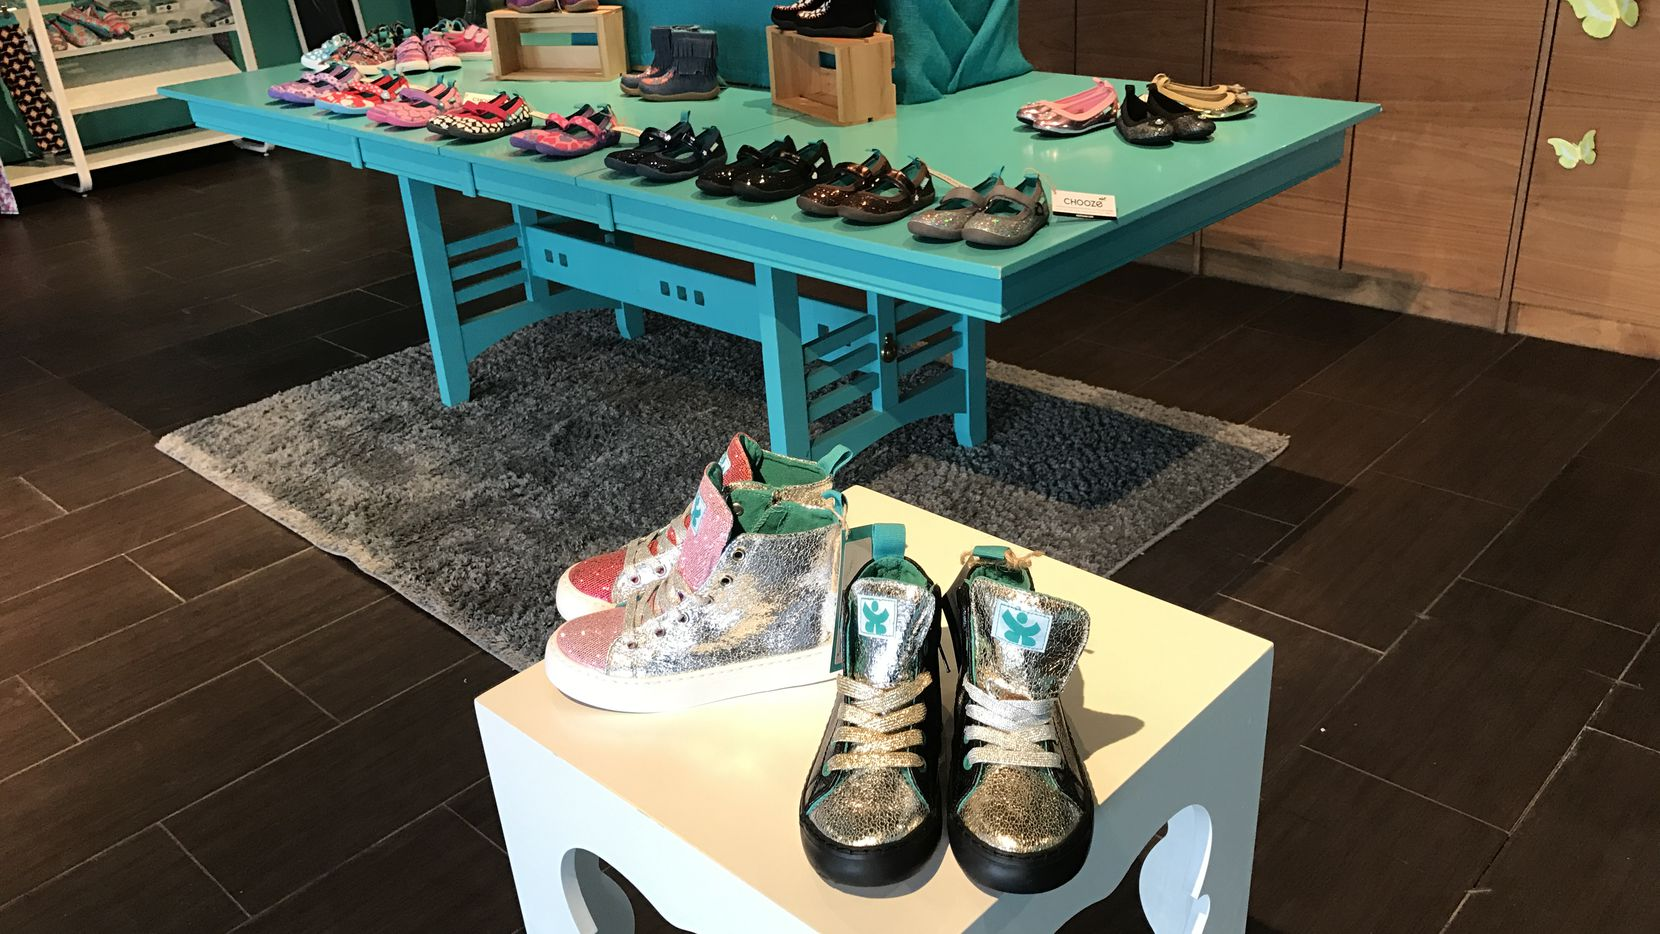 Chooze pop-up store at Preston and Royal in Dallas.